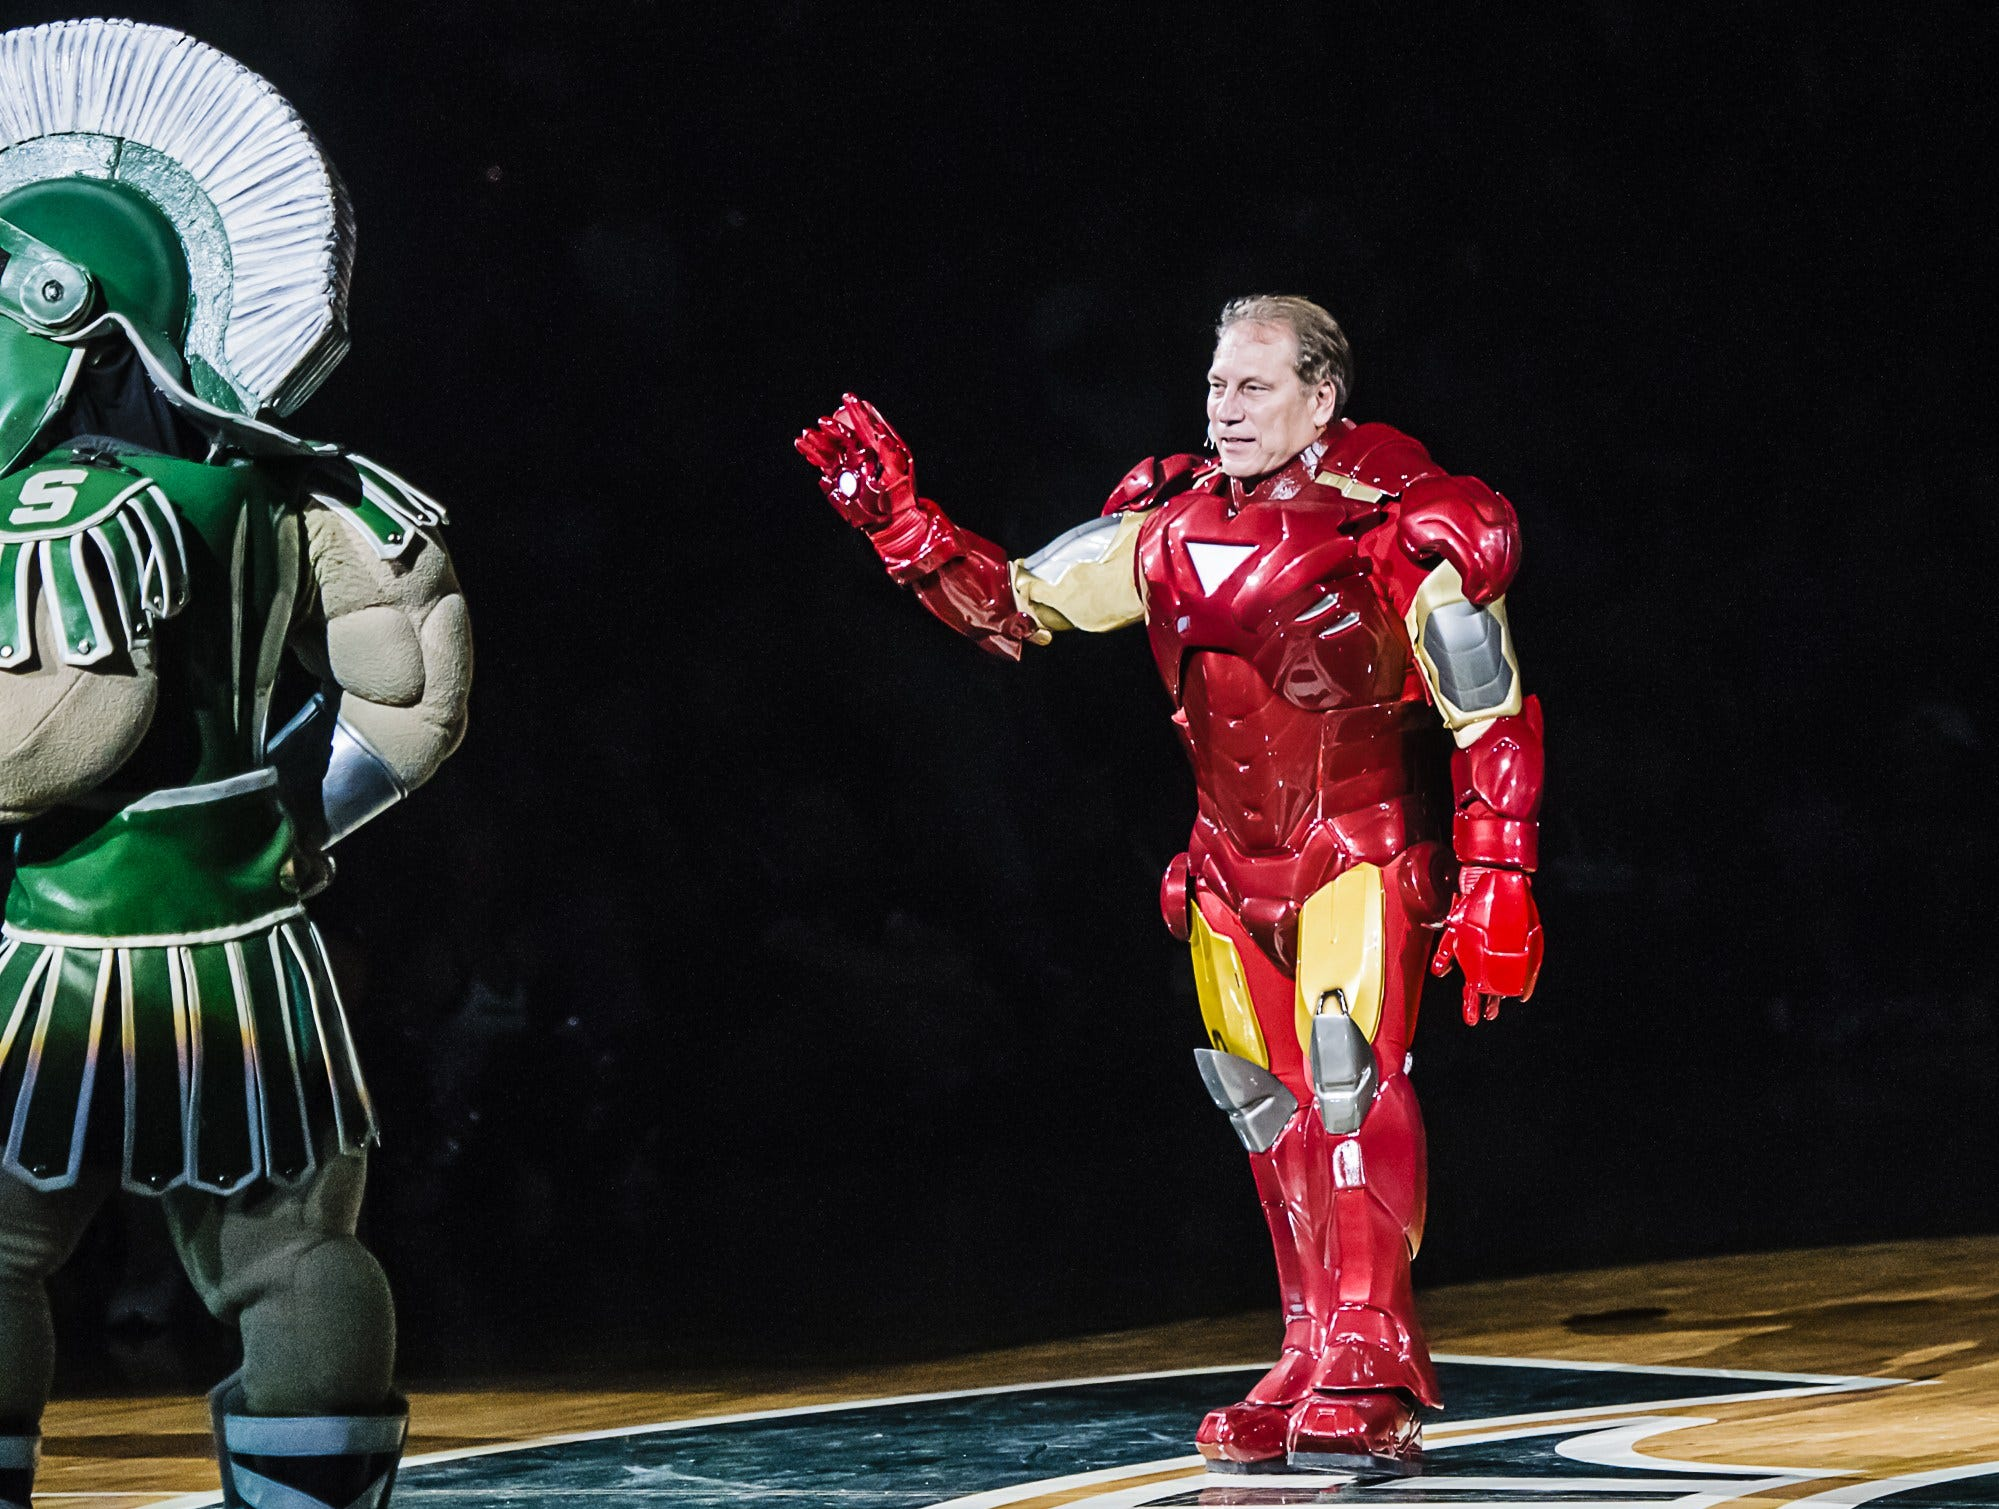 MSU Men's Basketball Head Coach Tom Izzo (right) costumed as Iron Mountain Man greets the crowd during Michigan State Madness Friday October 12, 2012 in East Lansing.